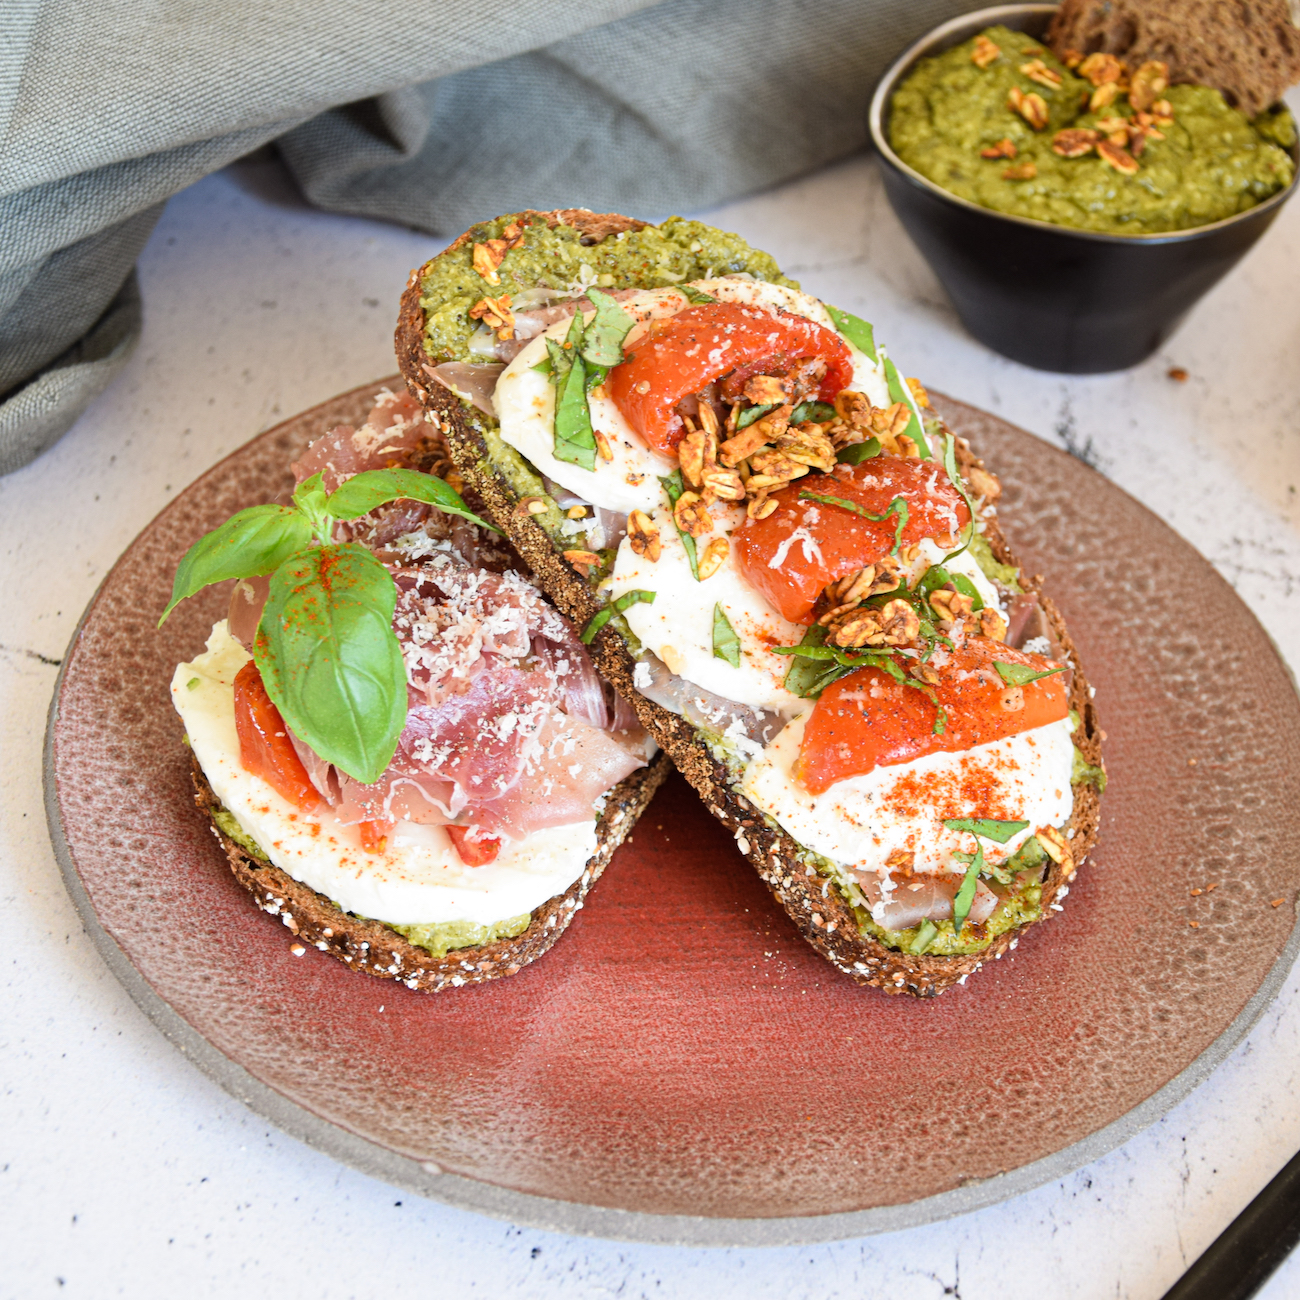 Toast with green pesto, mozzarella and prosciutto and XAVIES' Pure Toasted Nuts & Seeds